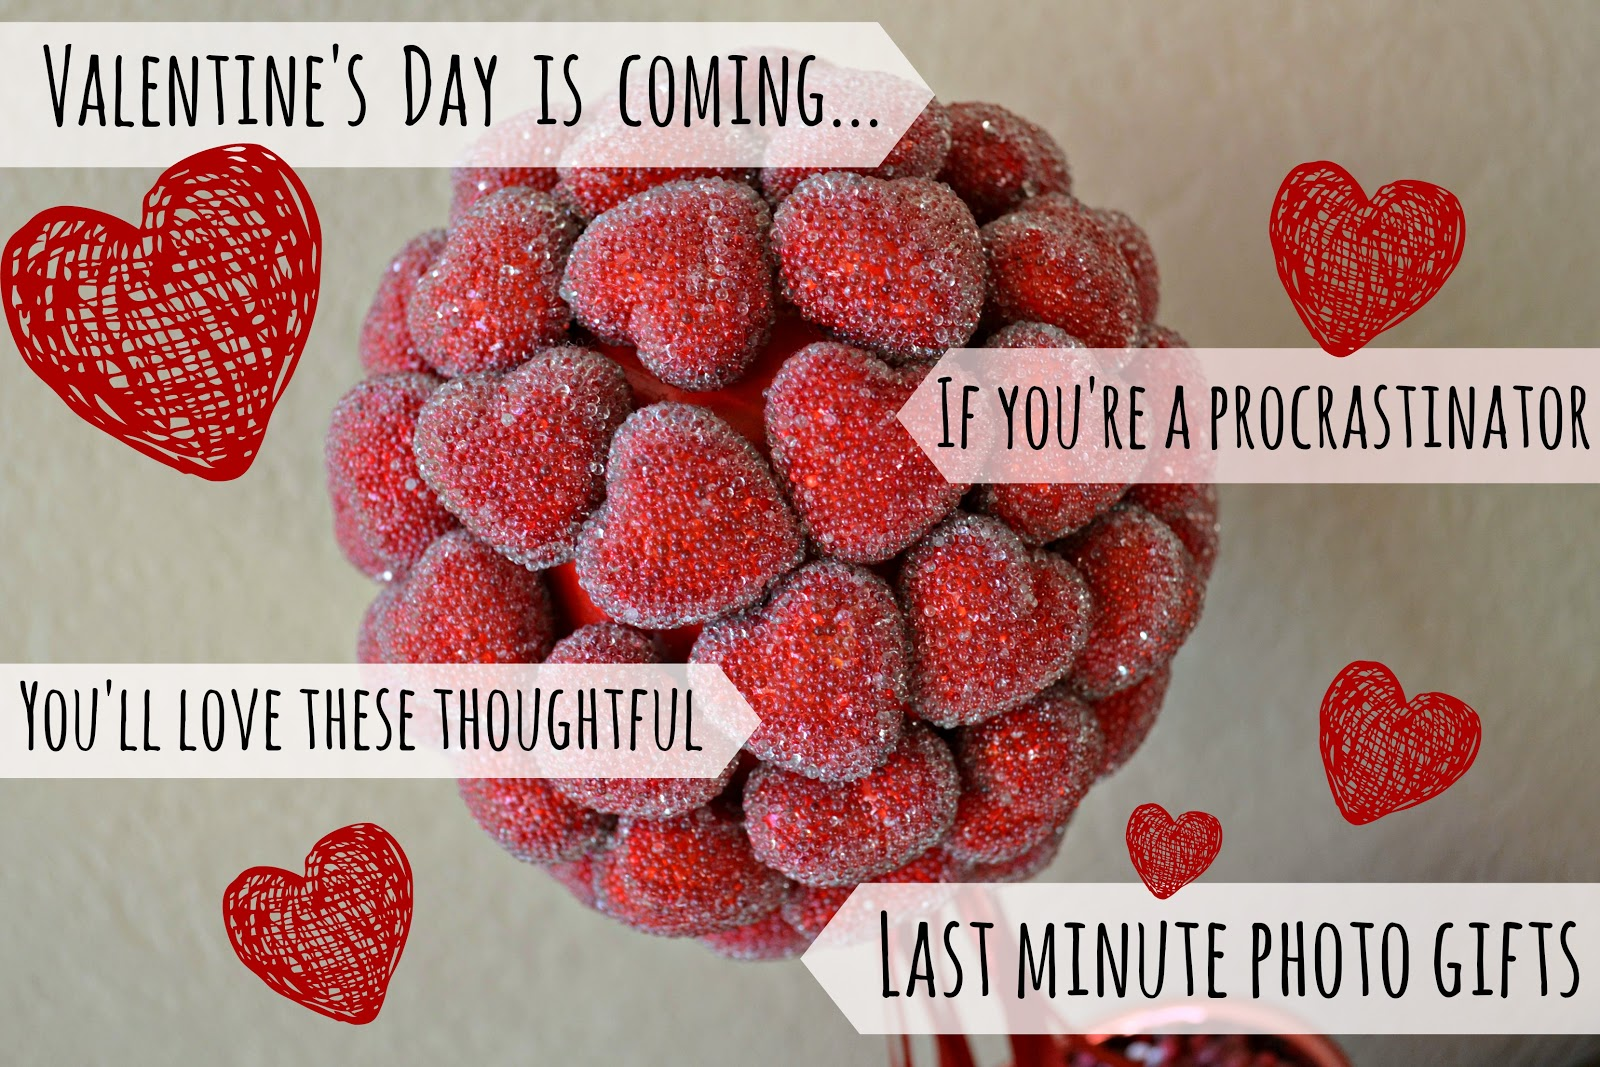 easy last minute valentines day photo gifts from walgreens happyhealty cbias